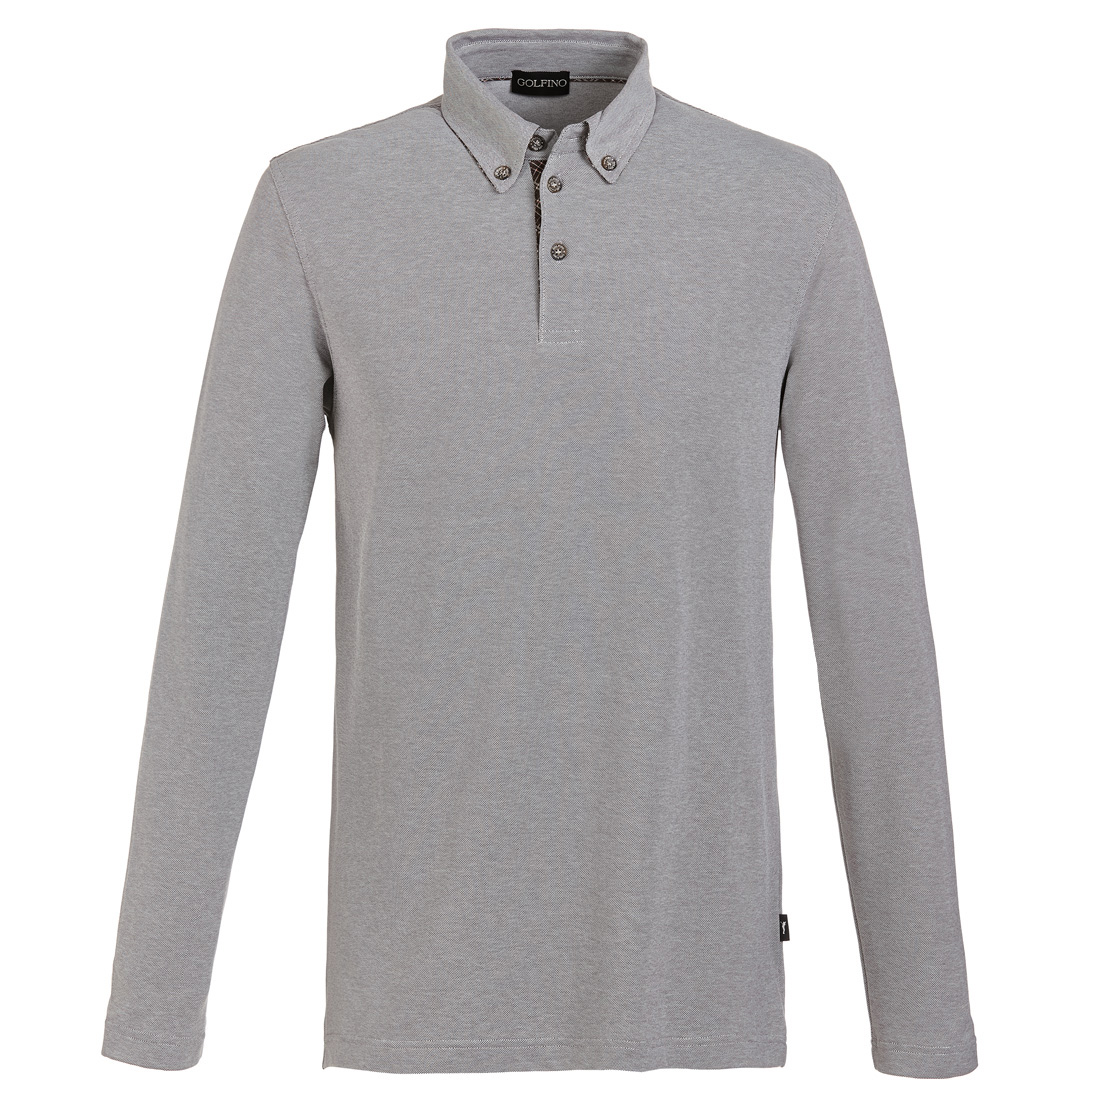 Men's long sleeve golf polo with button-down collar and sun protection